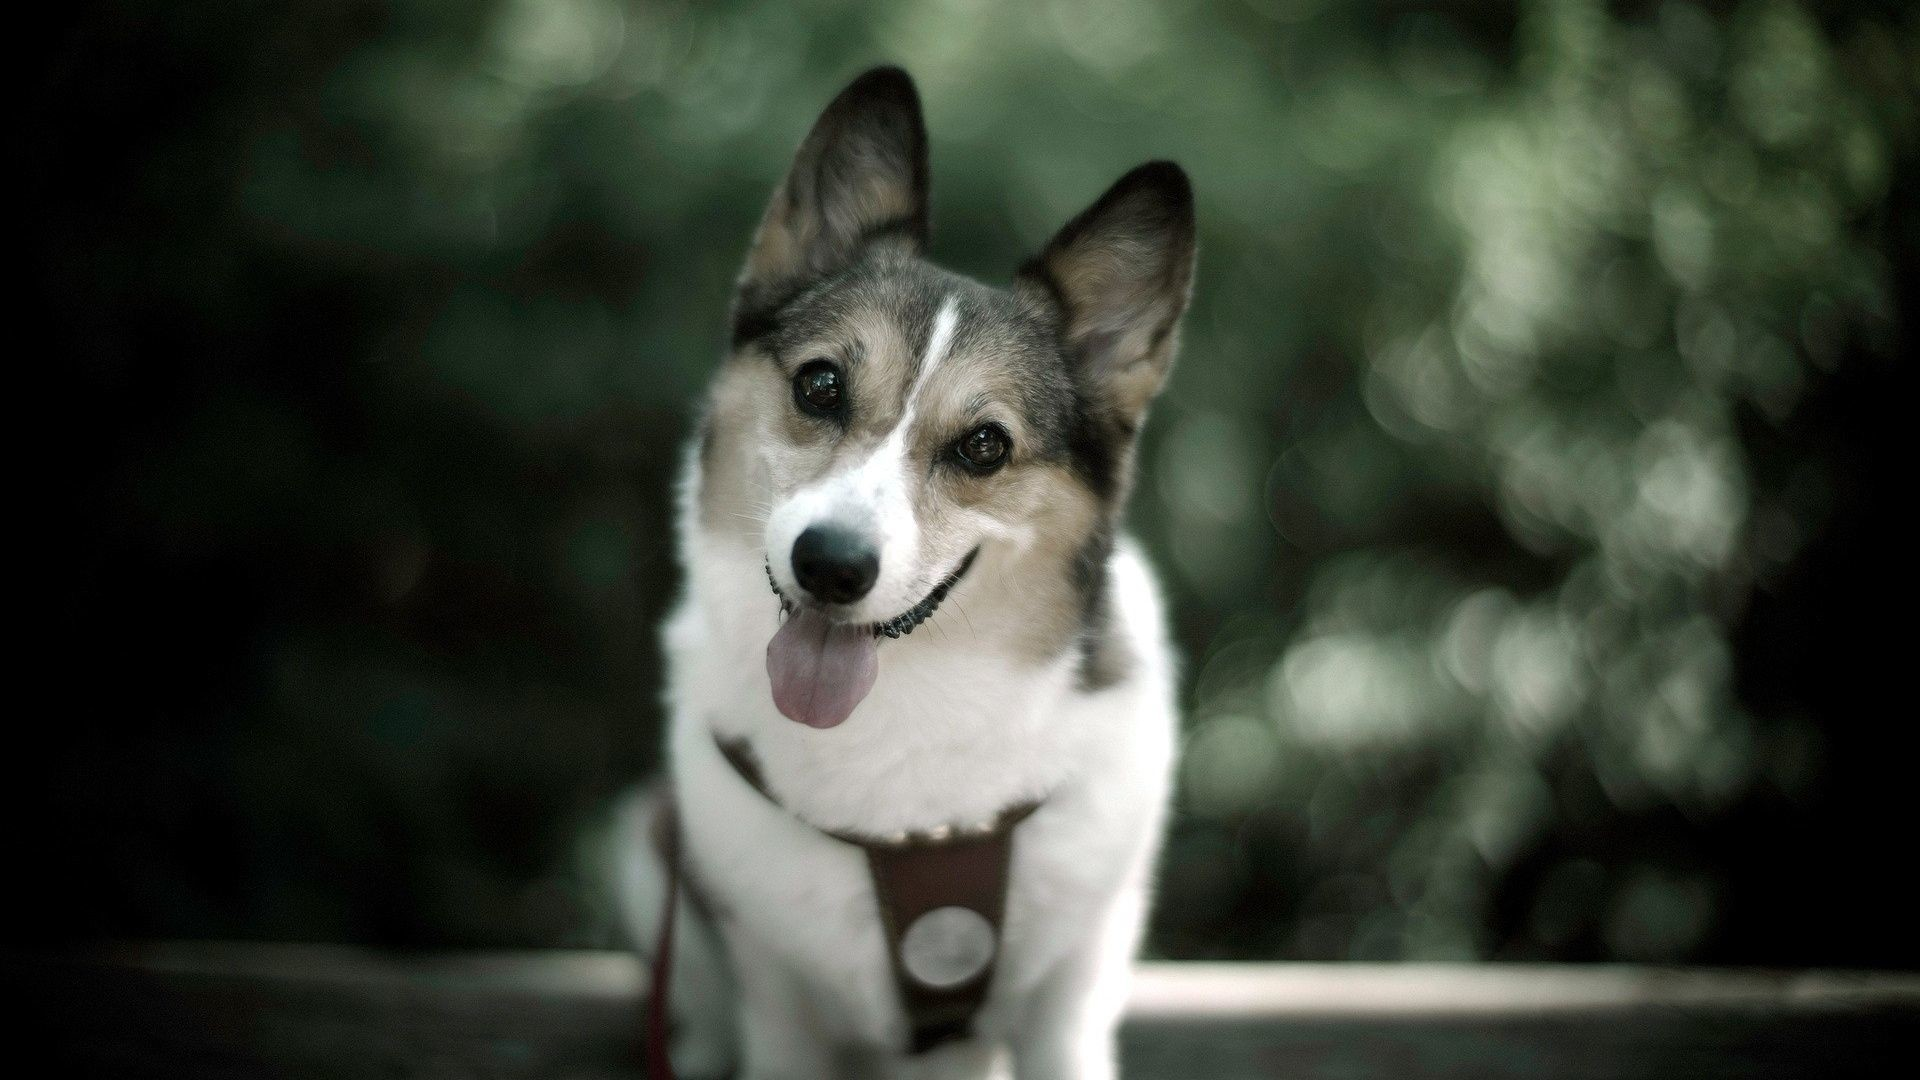 Animal Wallpaper: Cute Dog Wallpaper with High Resolution.